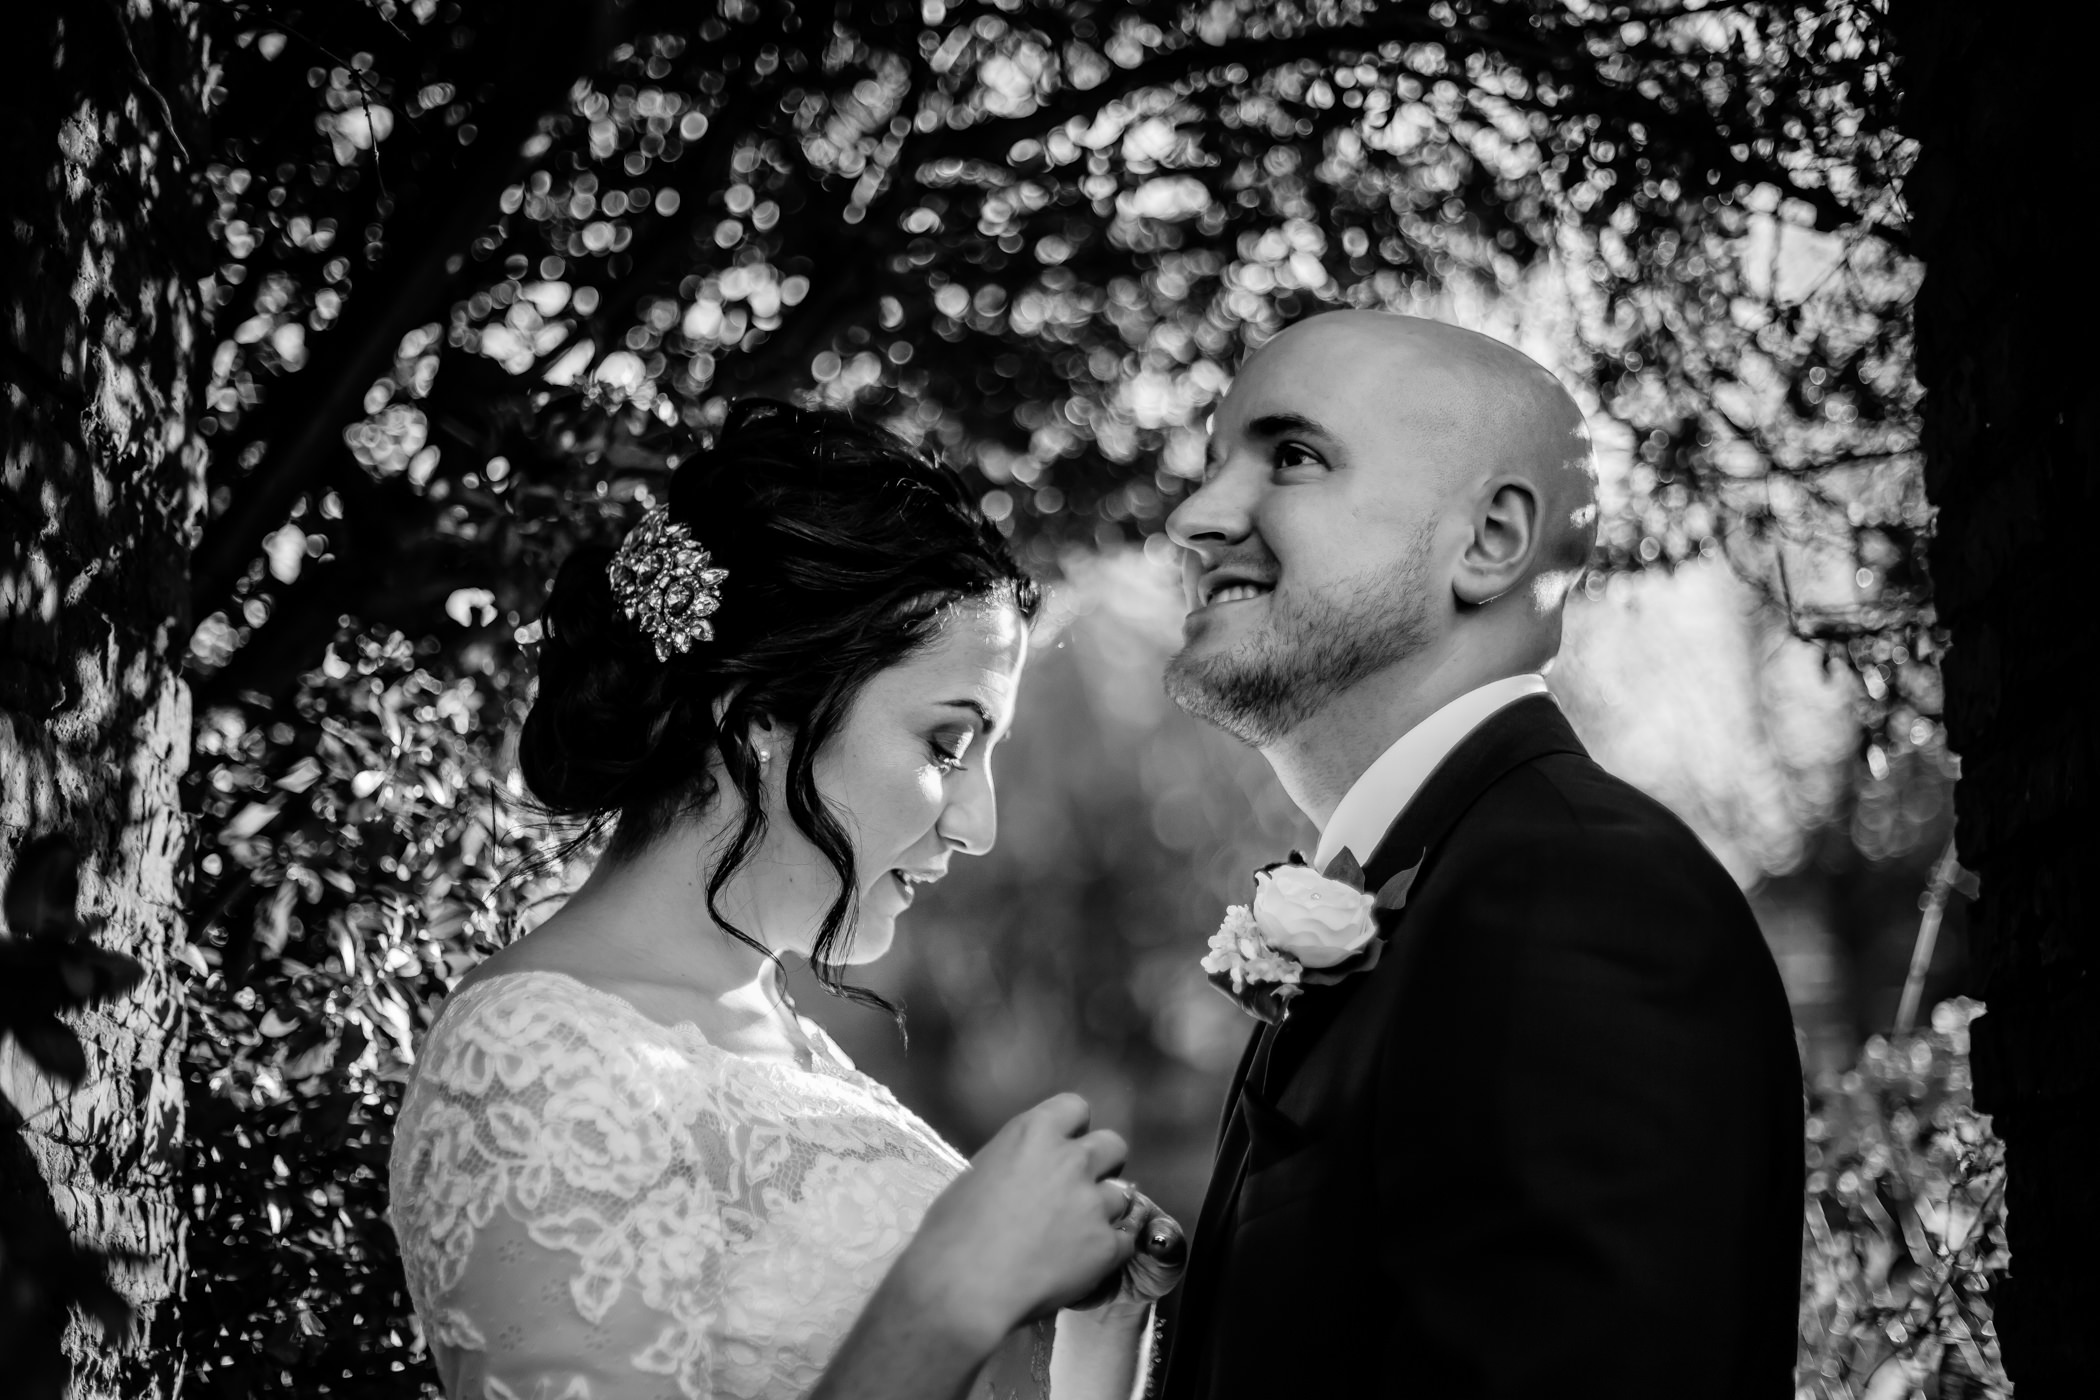 Georgie & steve - Sansom photography Grays Court York Wedding-43